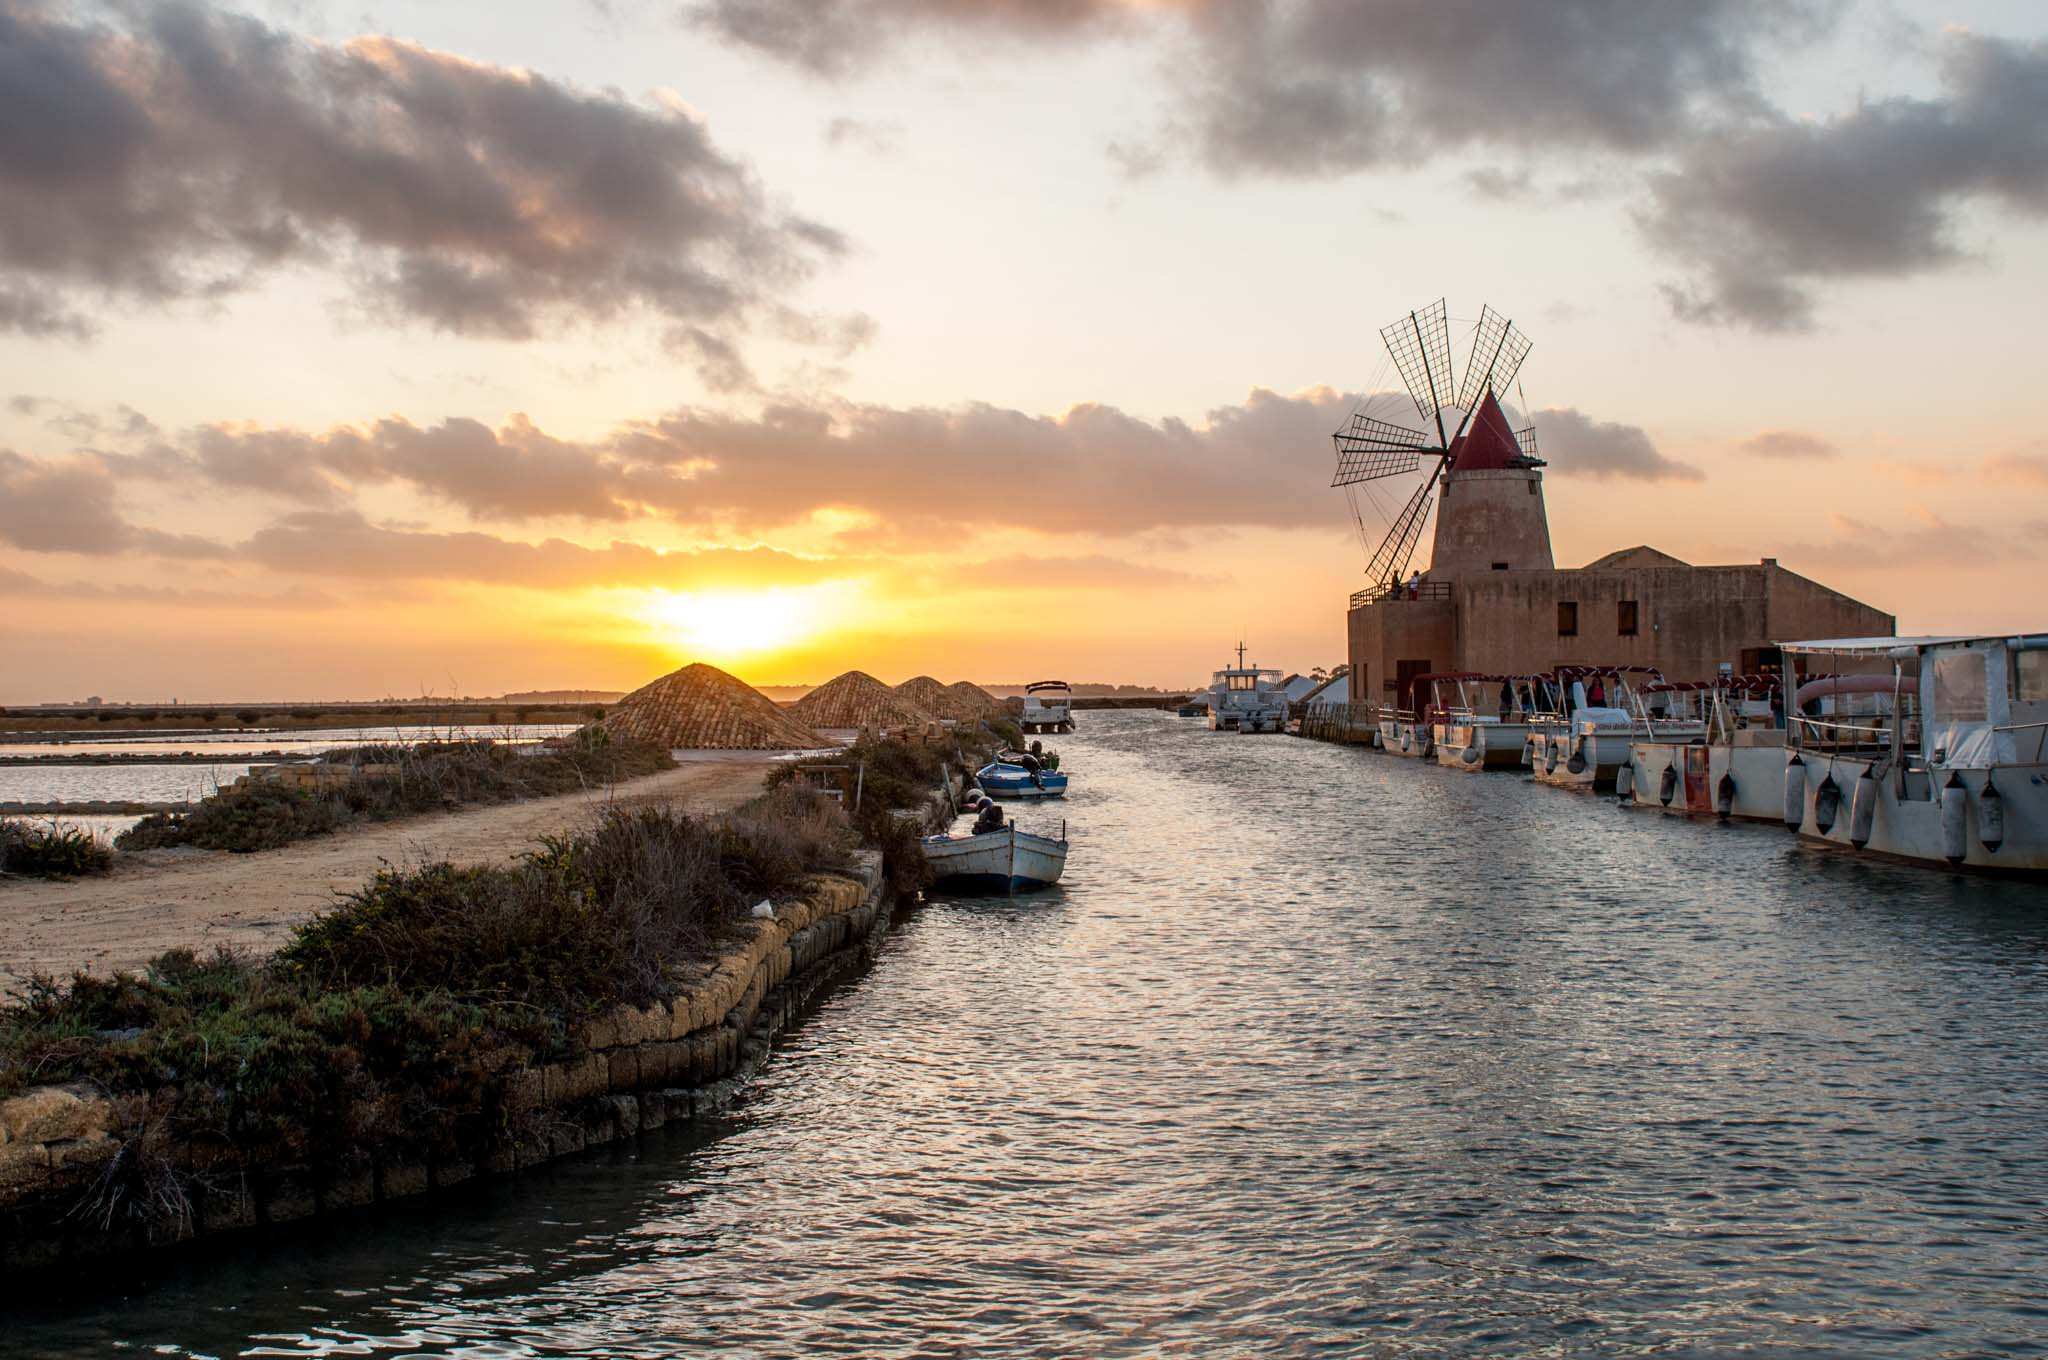 Salt mill and sea at sunset in Trapani, Sicily